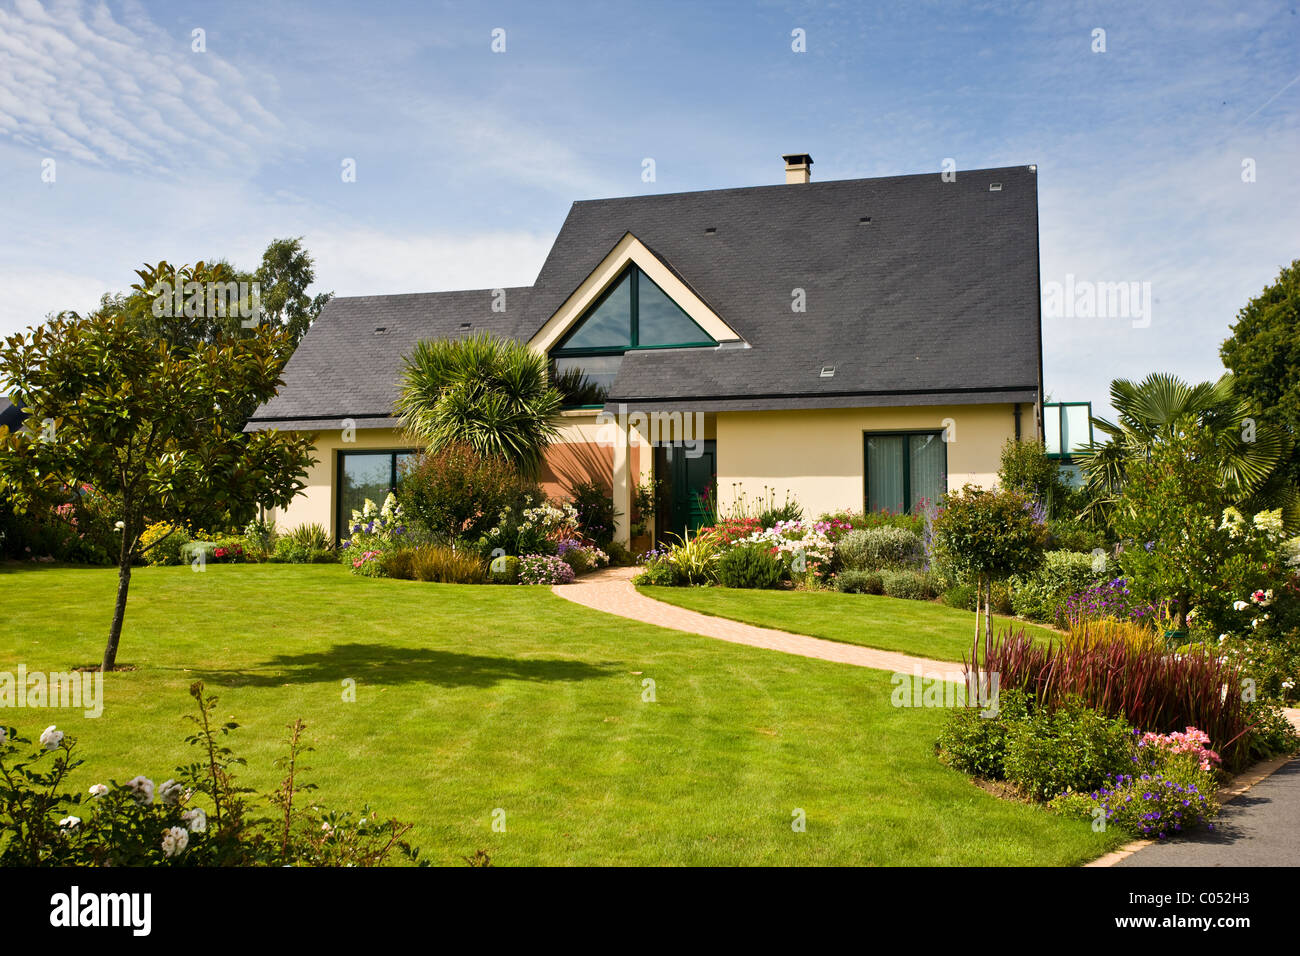 Typical French Modern Bungalow House At Ernee In Normandy France Stock Photo Alamy